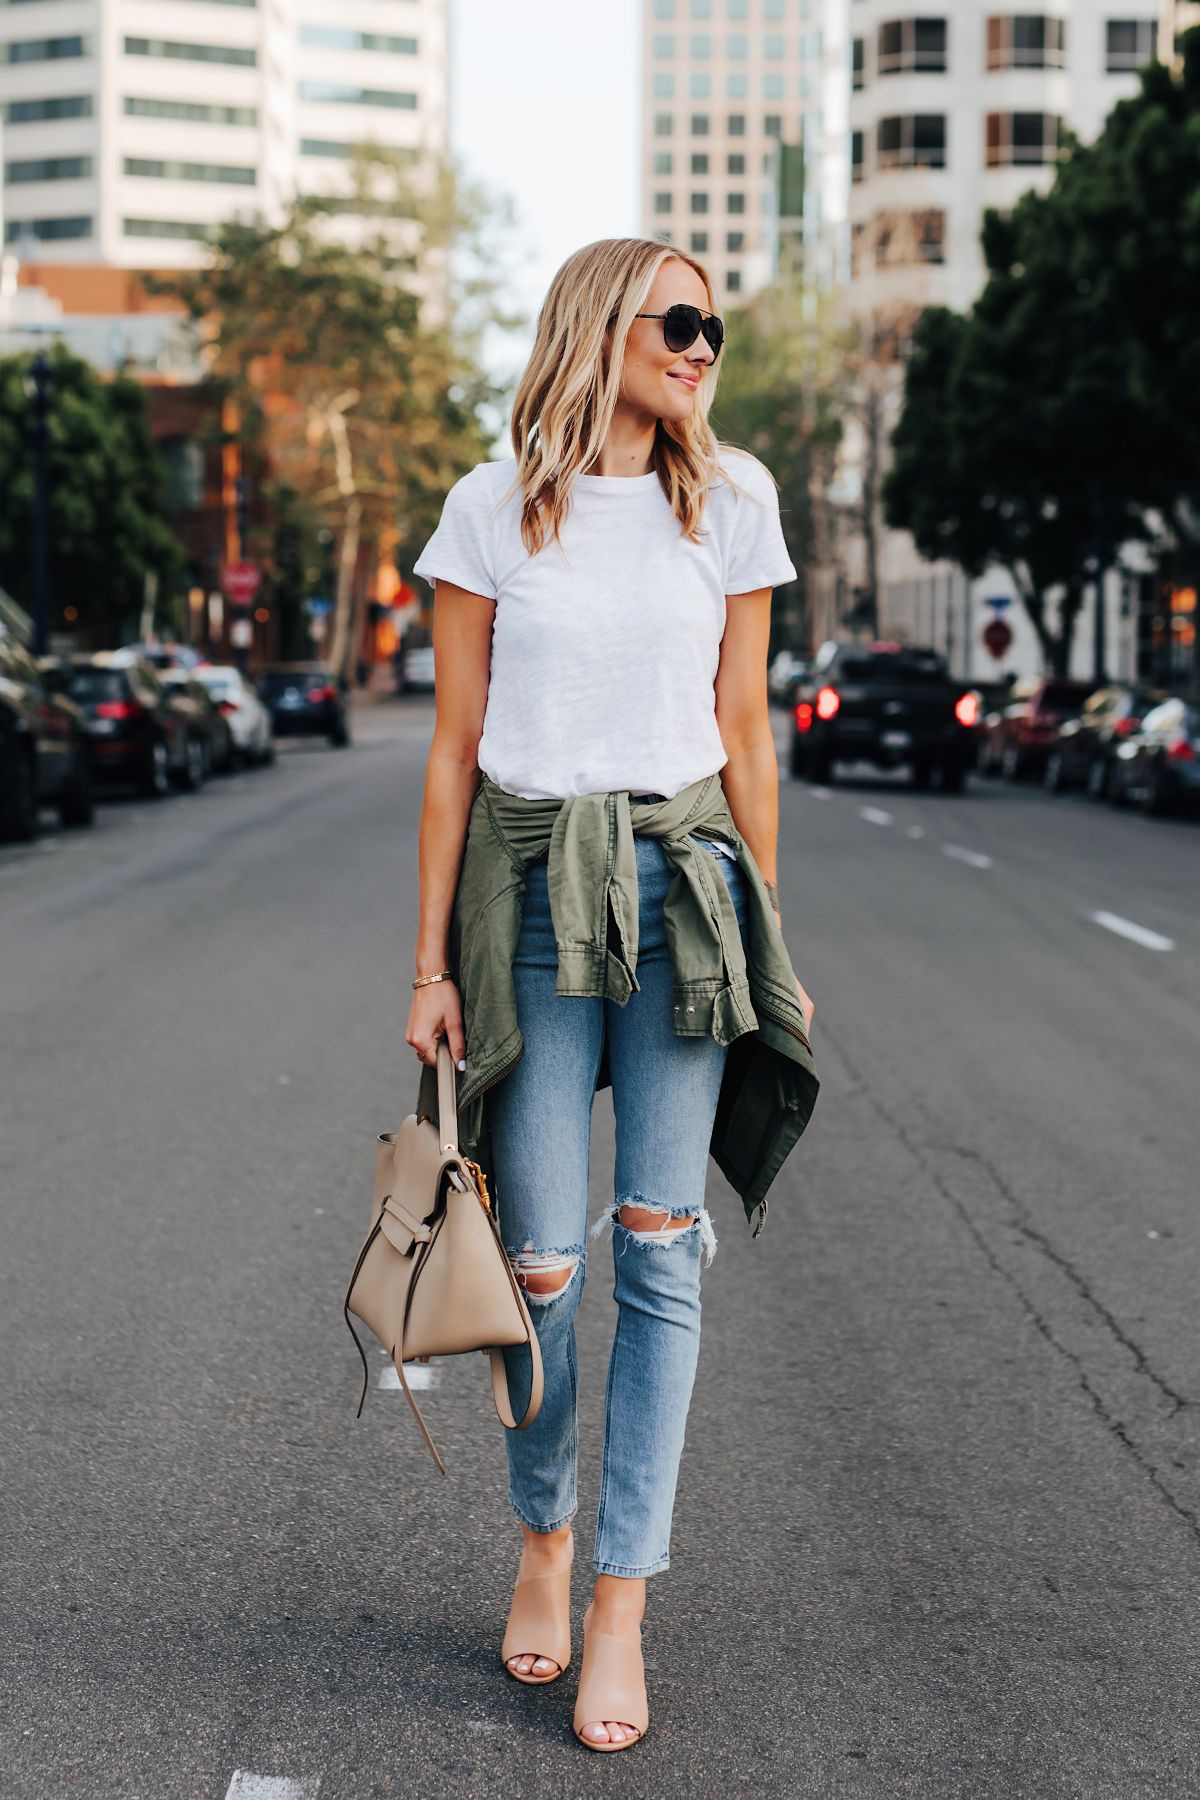 4ded20f5759 Fashion Jackson Wearing ATM White Tshirt Ripped Skinny Jeans Green Utility  Jacket Vince Hanna Nude Heeled